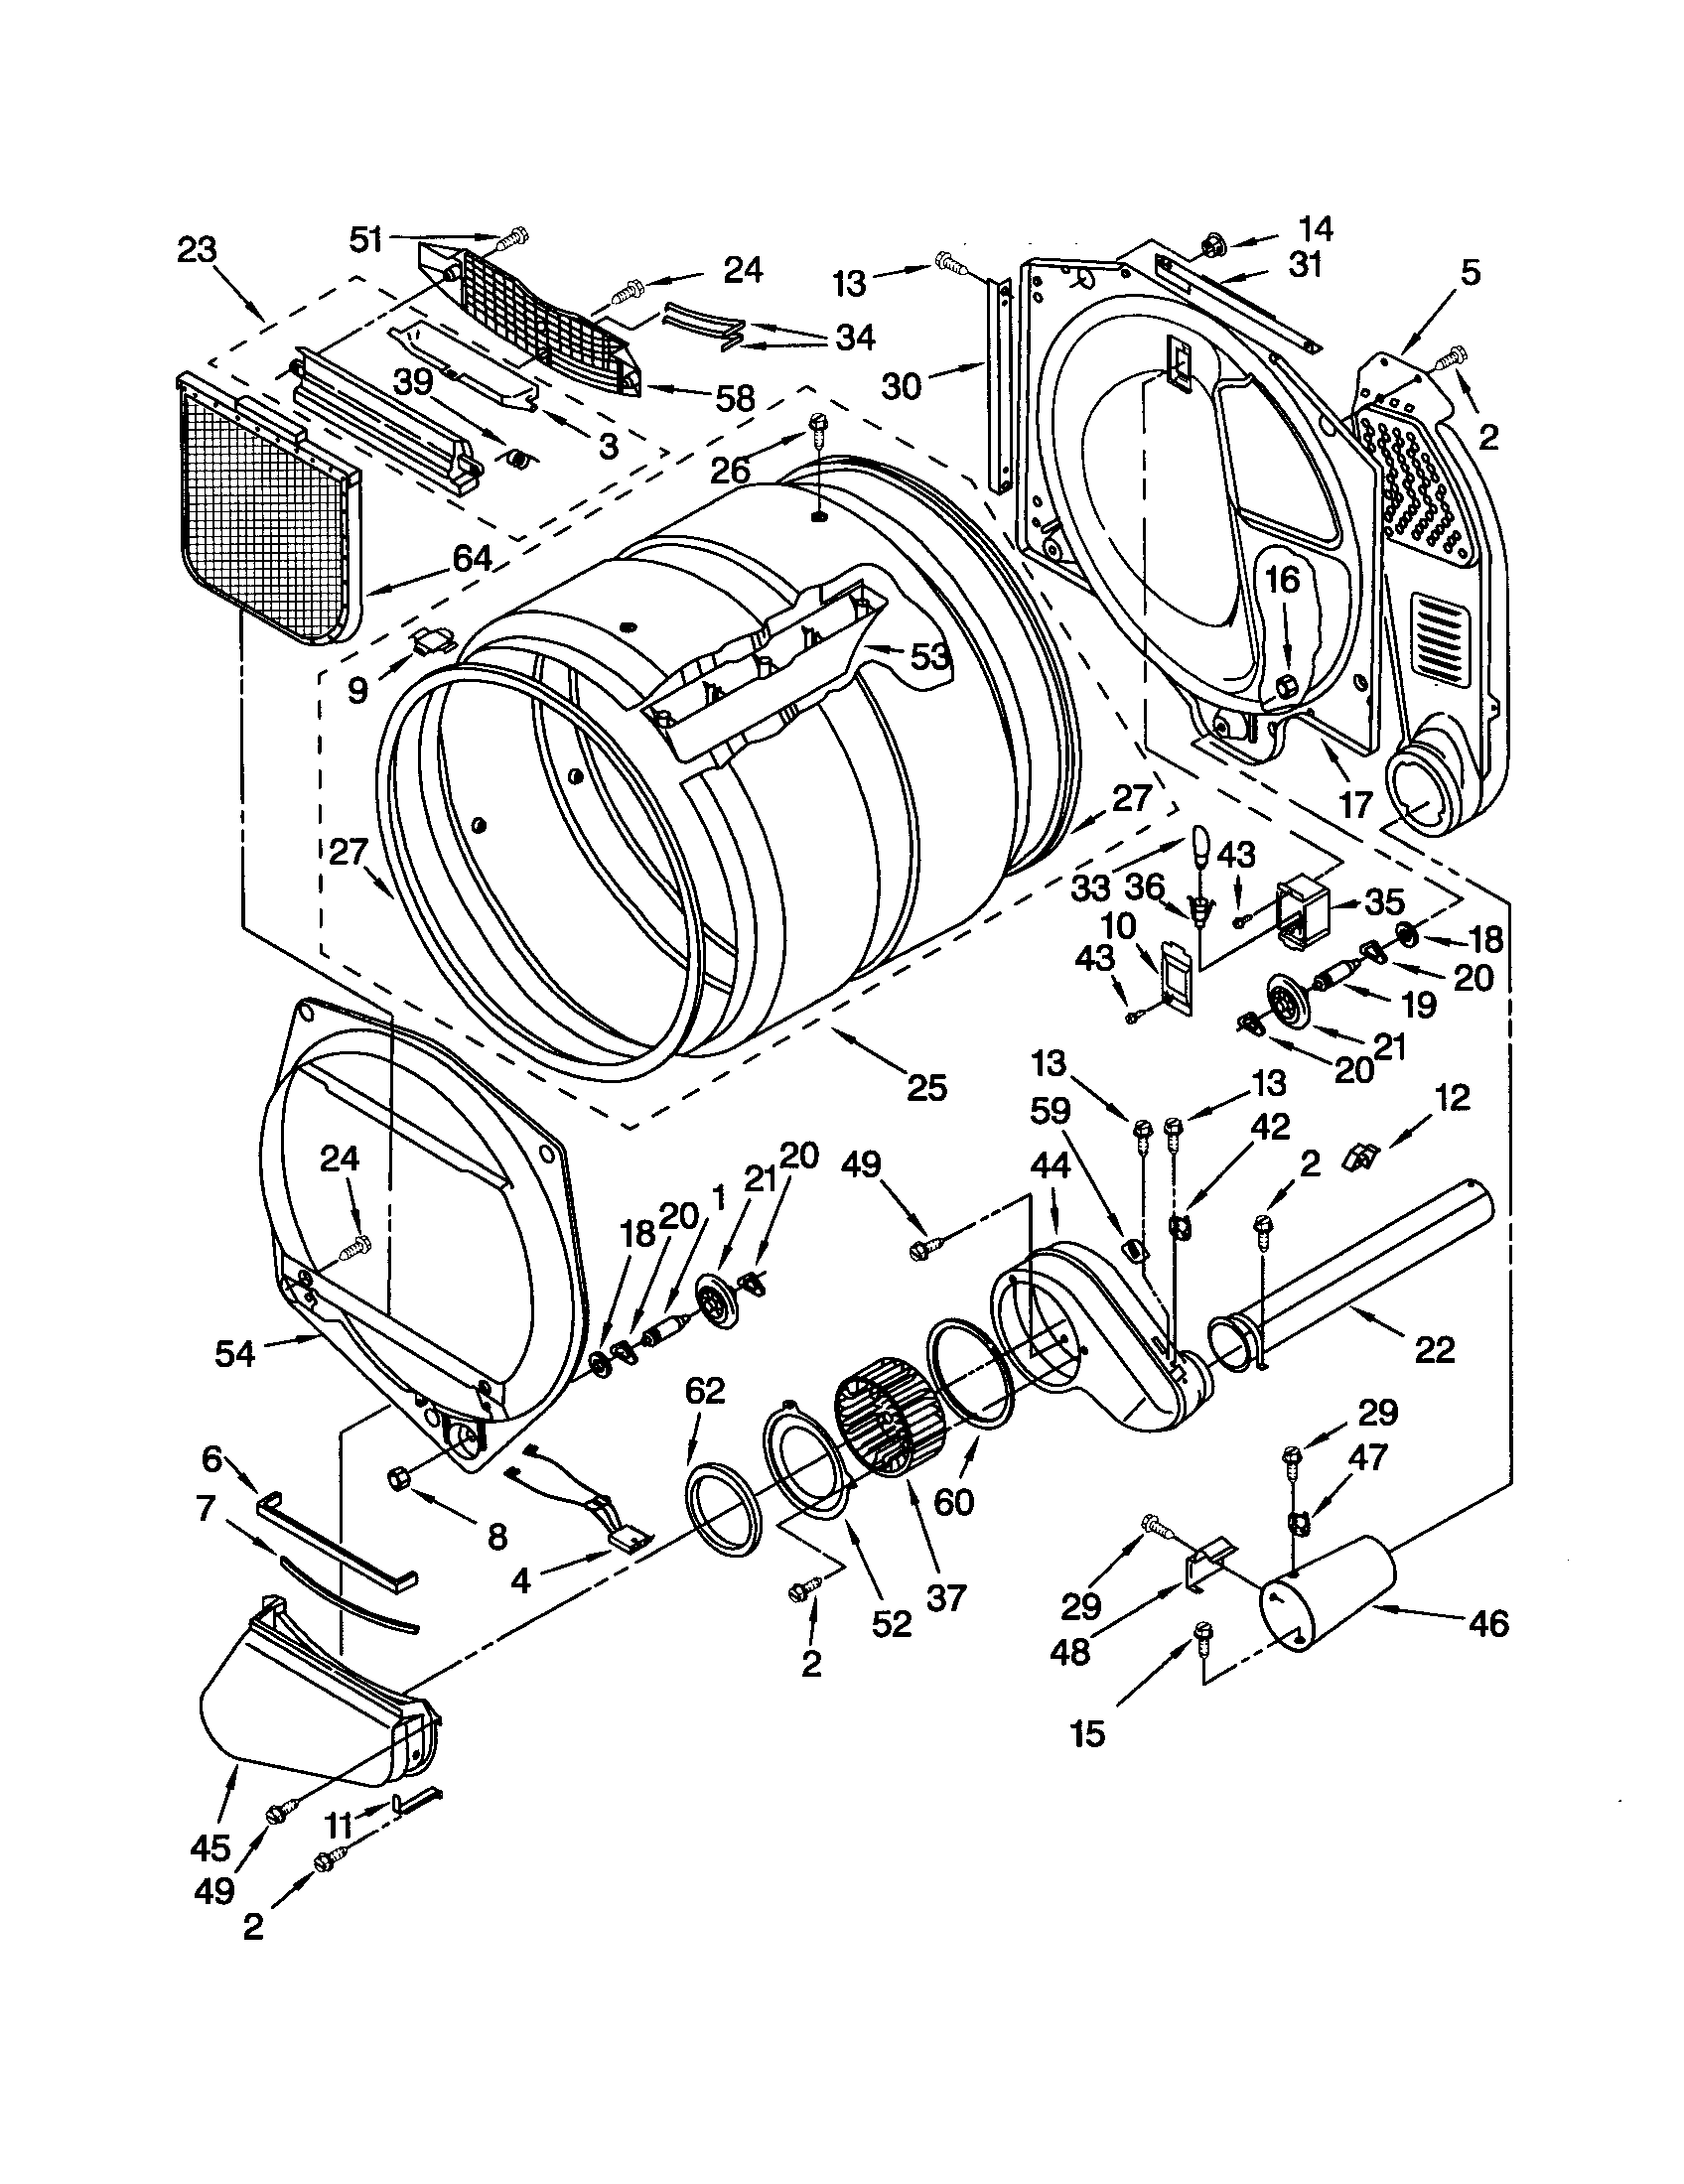 Wiring Diagram For Kenmore Elite Electric Dryer Diagram Electric Dryers Gas Dryer Kenmore